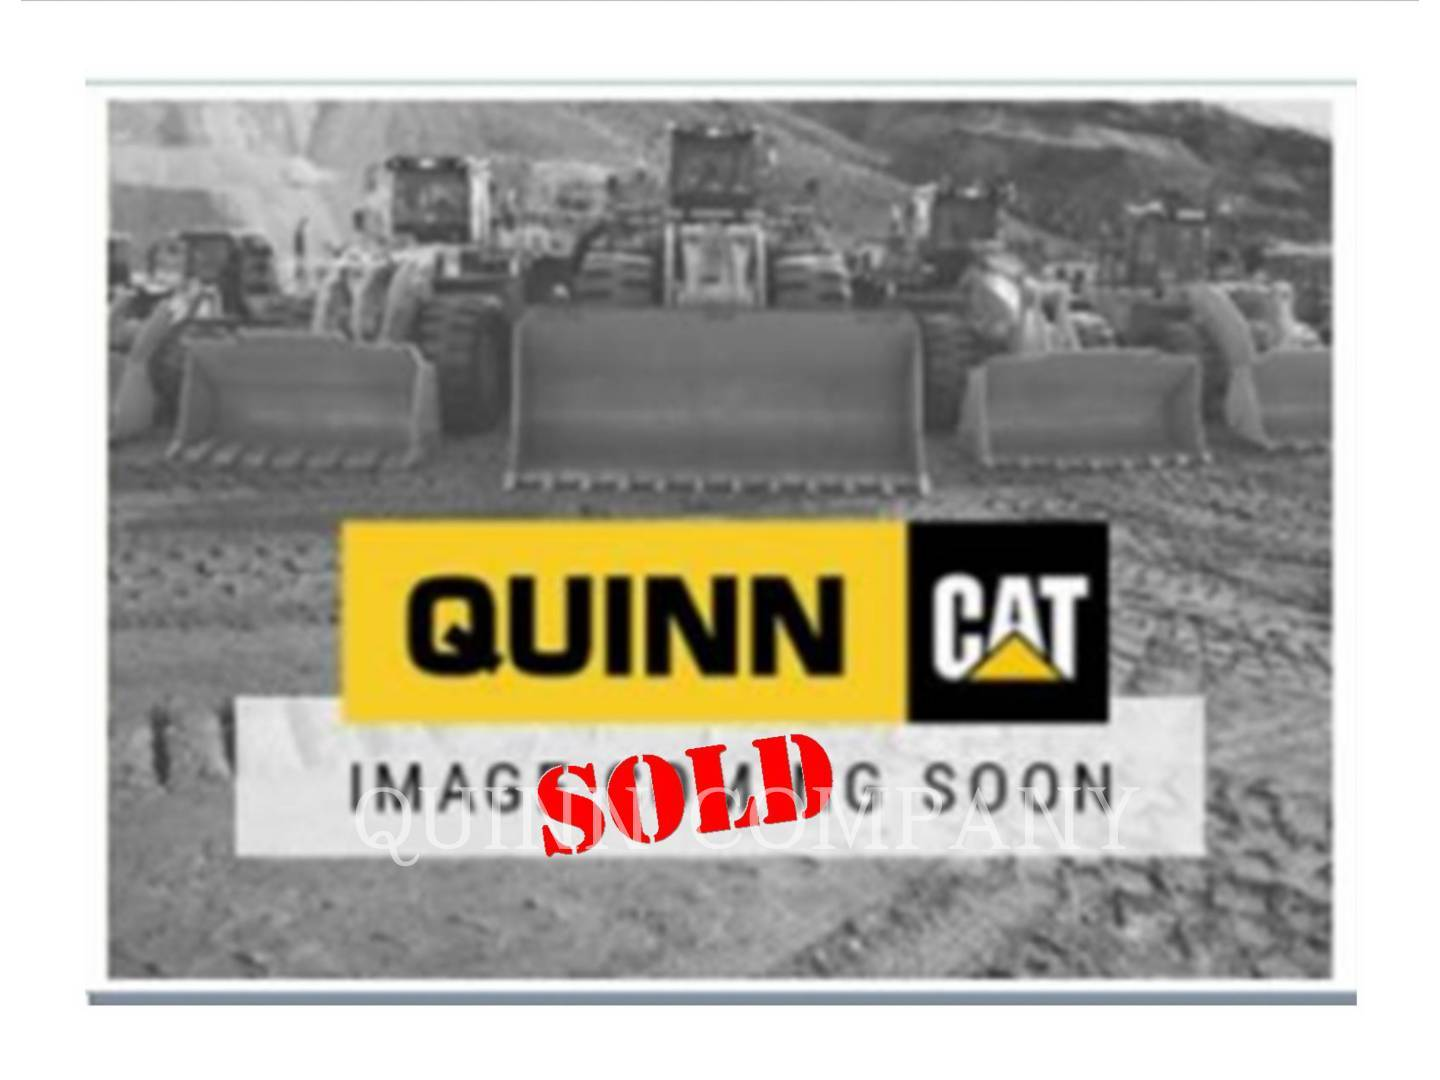 2016 Caterpillar 336FL Excavators and Mini Excavator